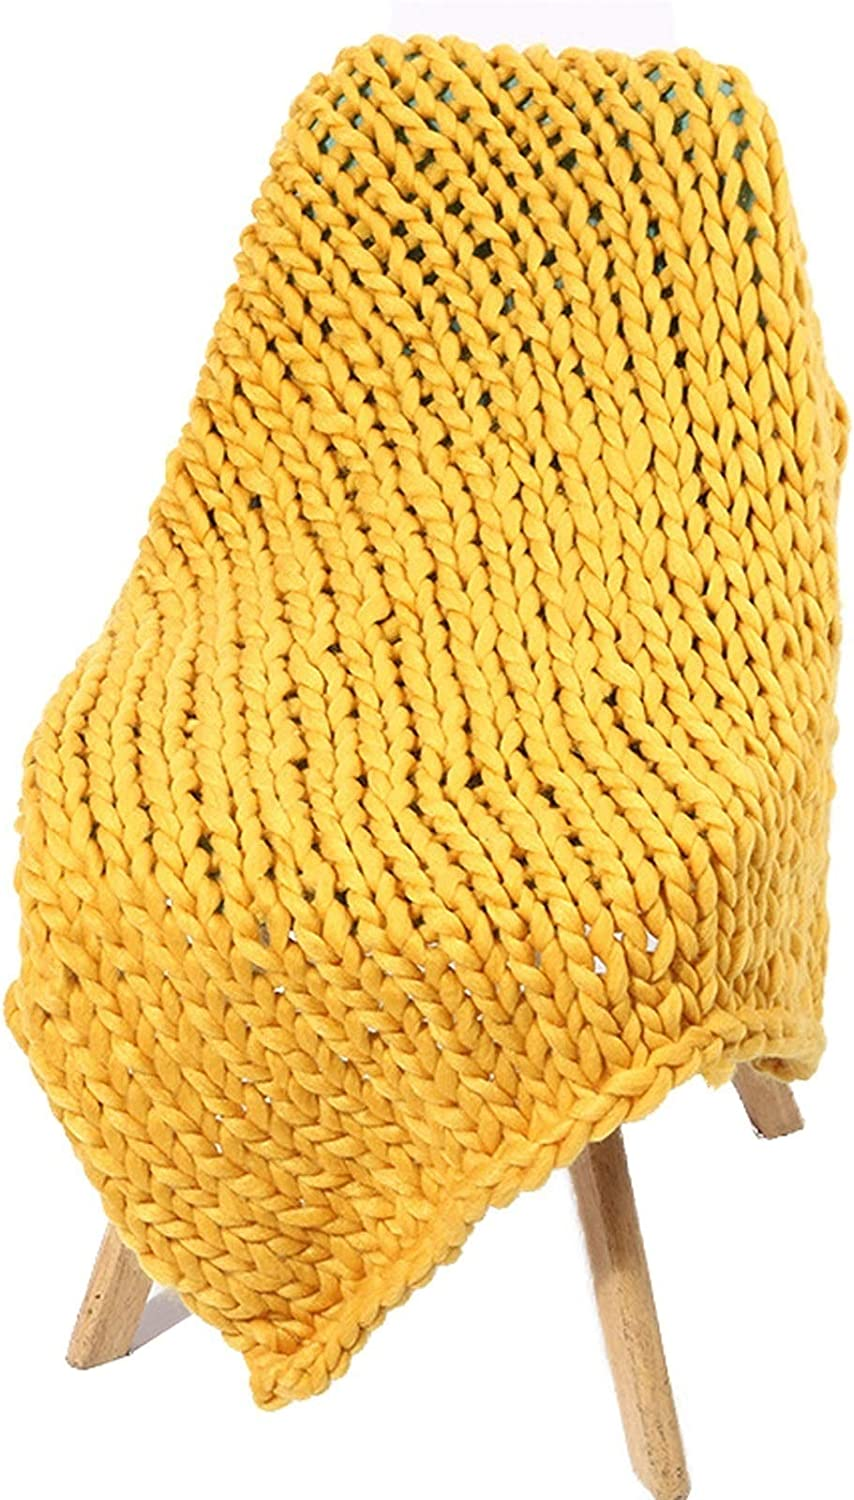 Chunky Knit Luxury Throw Albuquerque Mall Gifts Blanket Large Cable Cozy Knitted B Soft